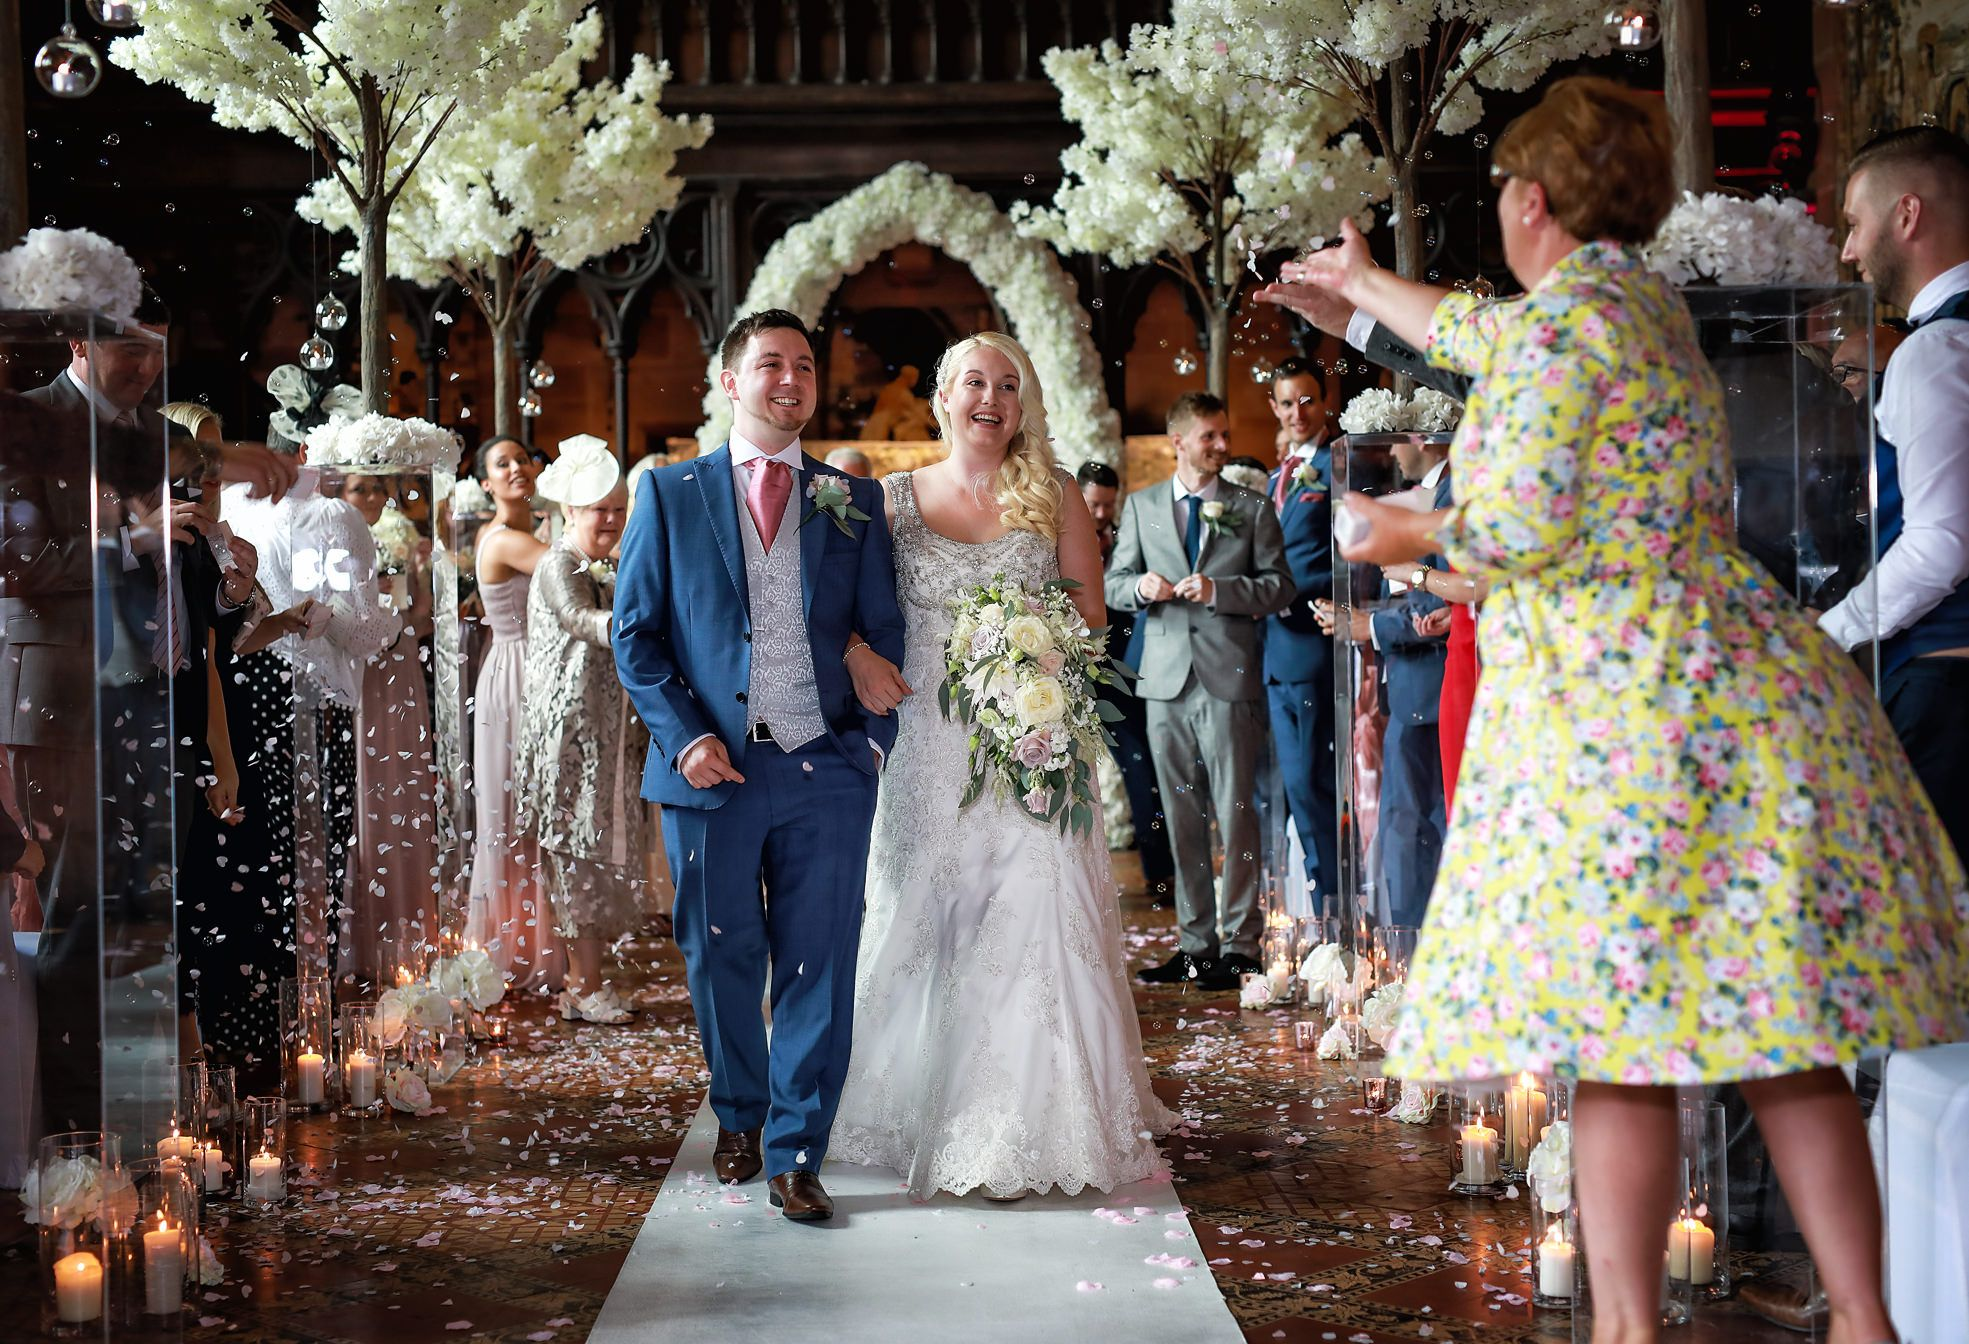 Smiling bride and groom recieve confetti as they walk up the aisle at Peckforton Castle